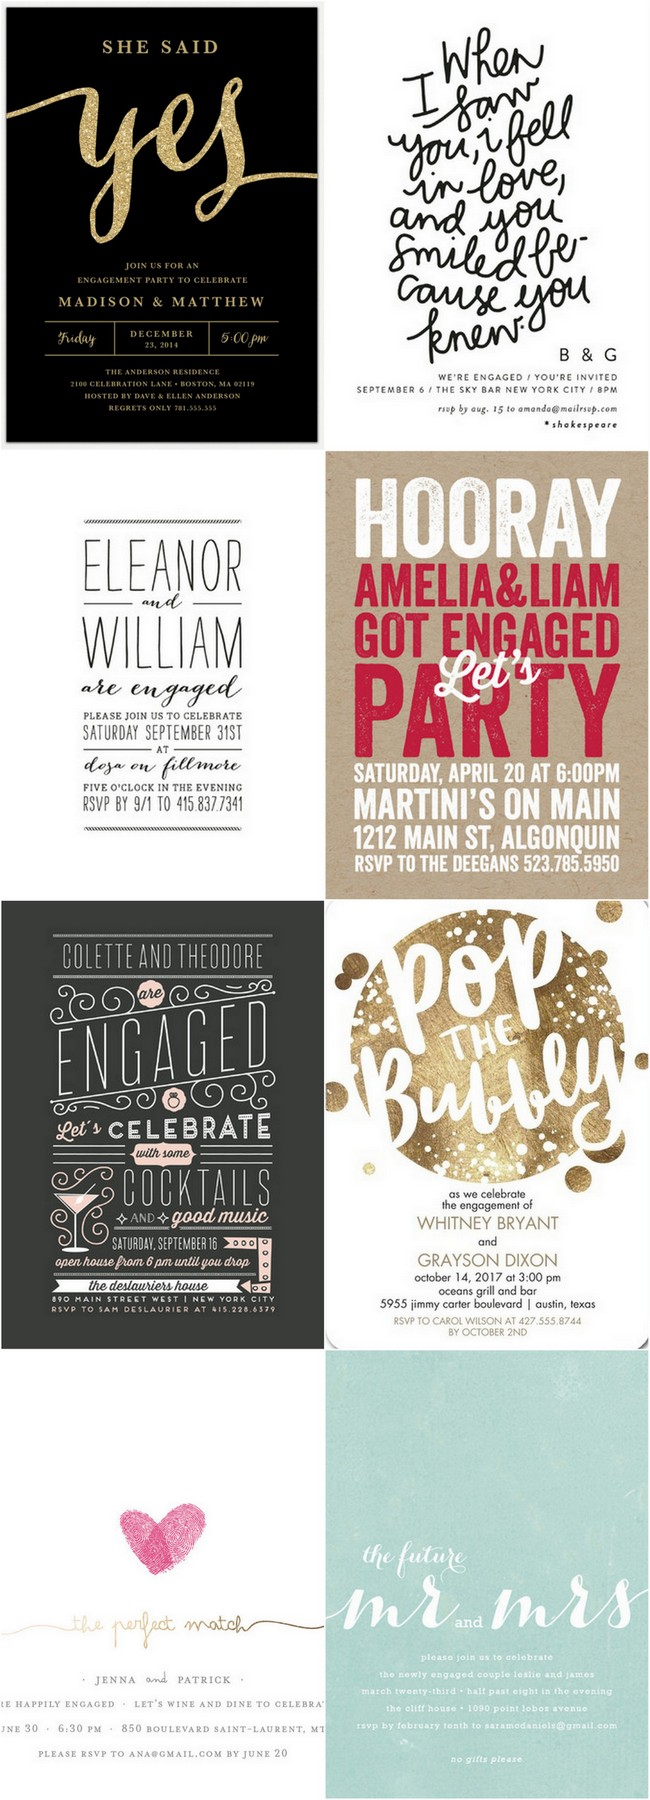 22 Engagement Party Invitations to Get Your Celebrations Started!